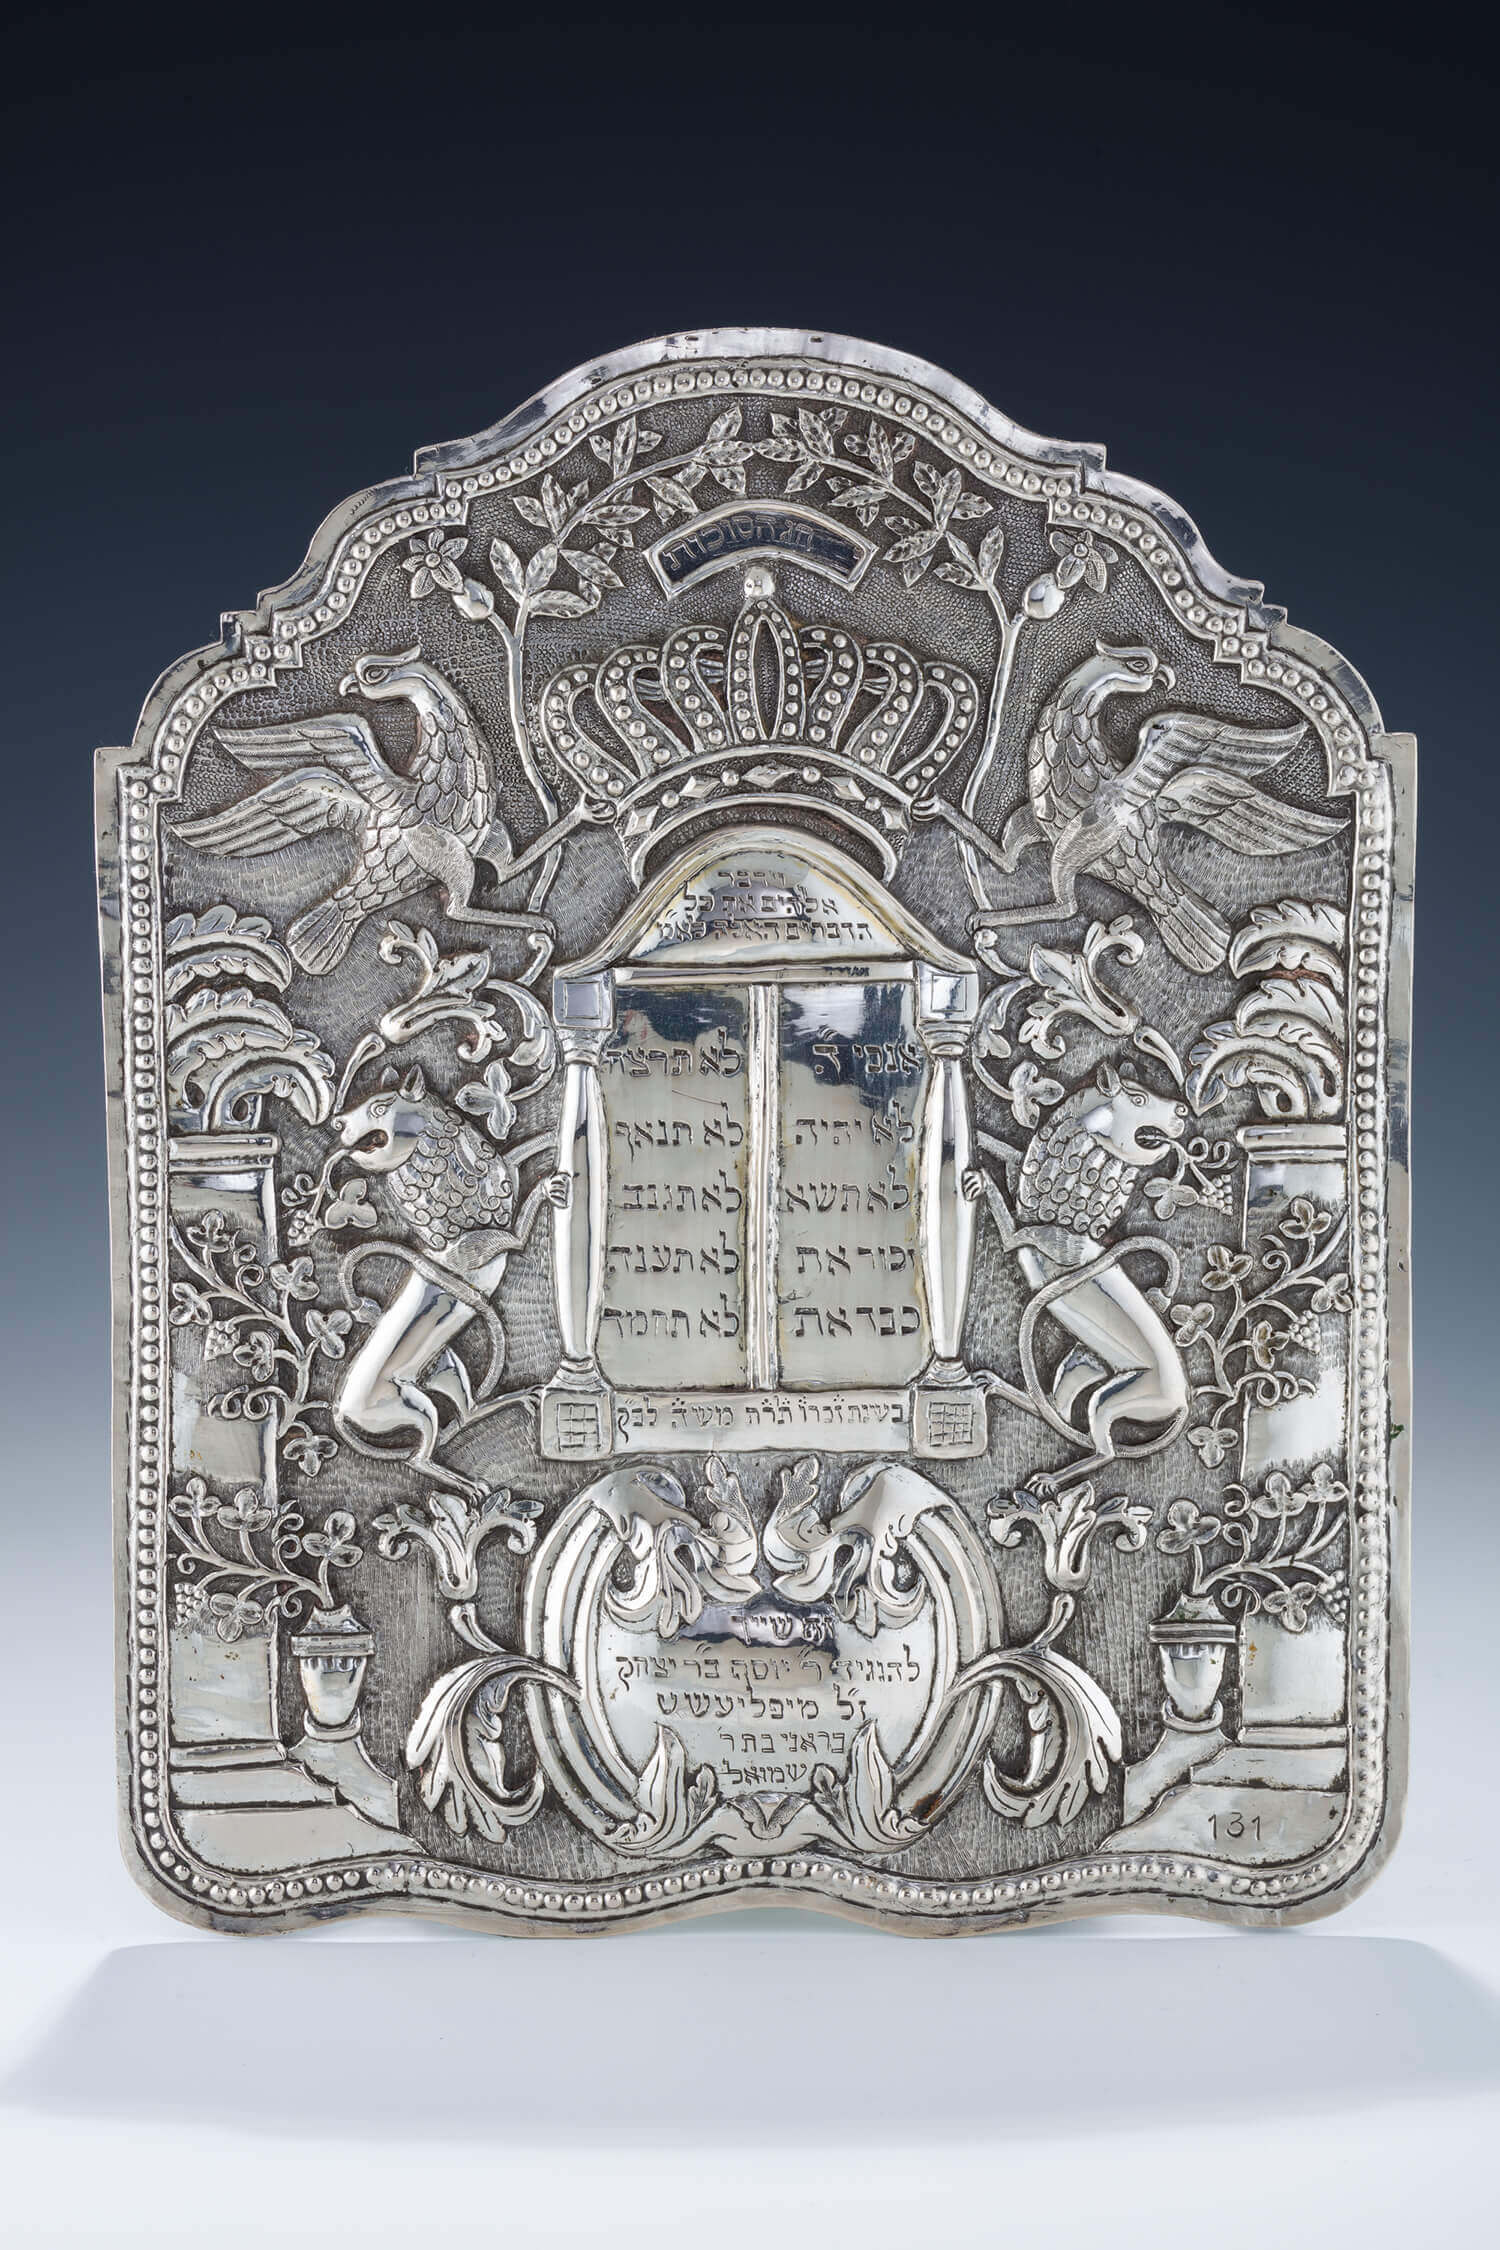 083. A LARGE AND MAGNIFICENT TORAH SHIELD